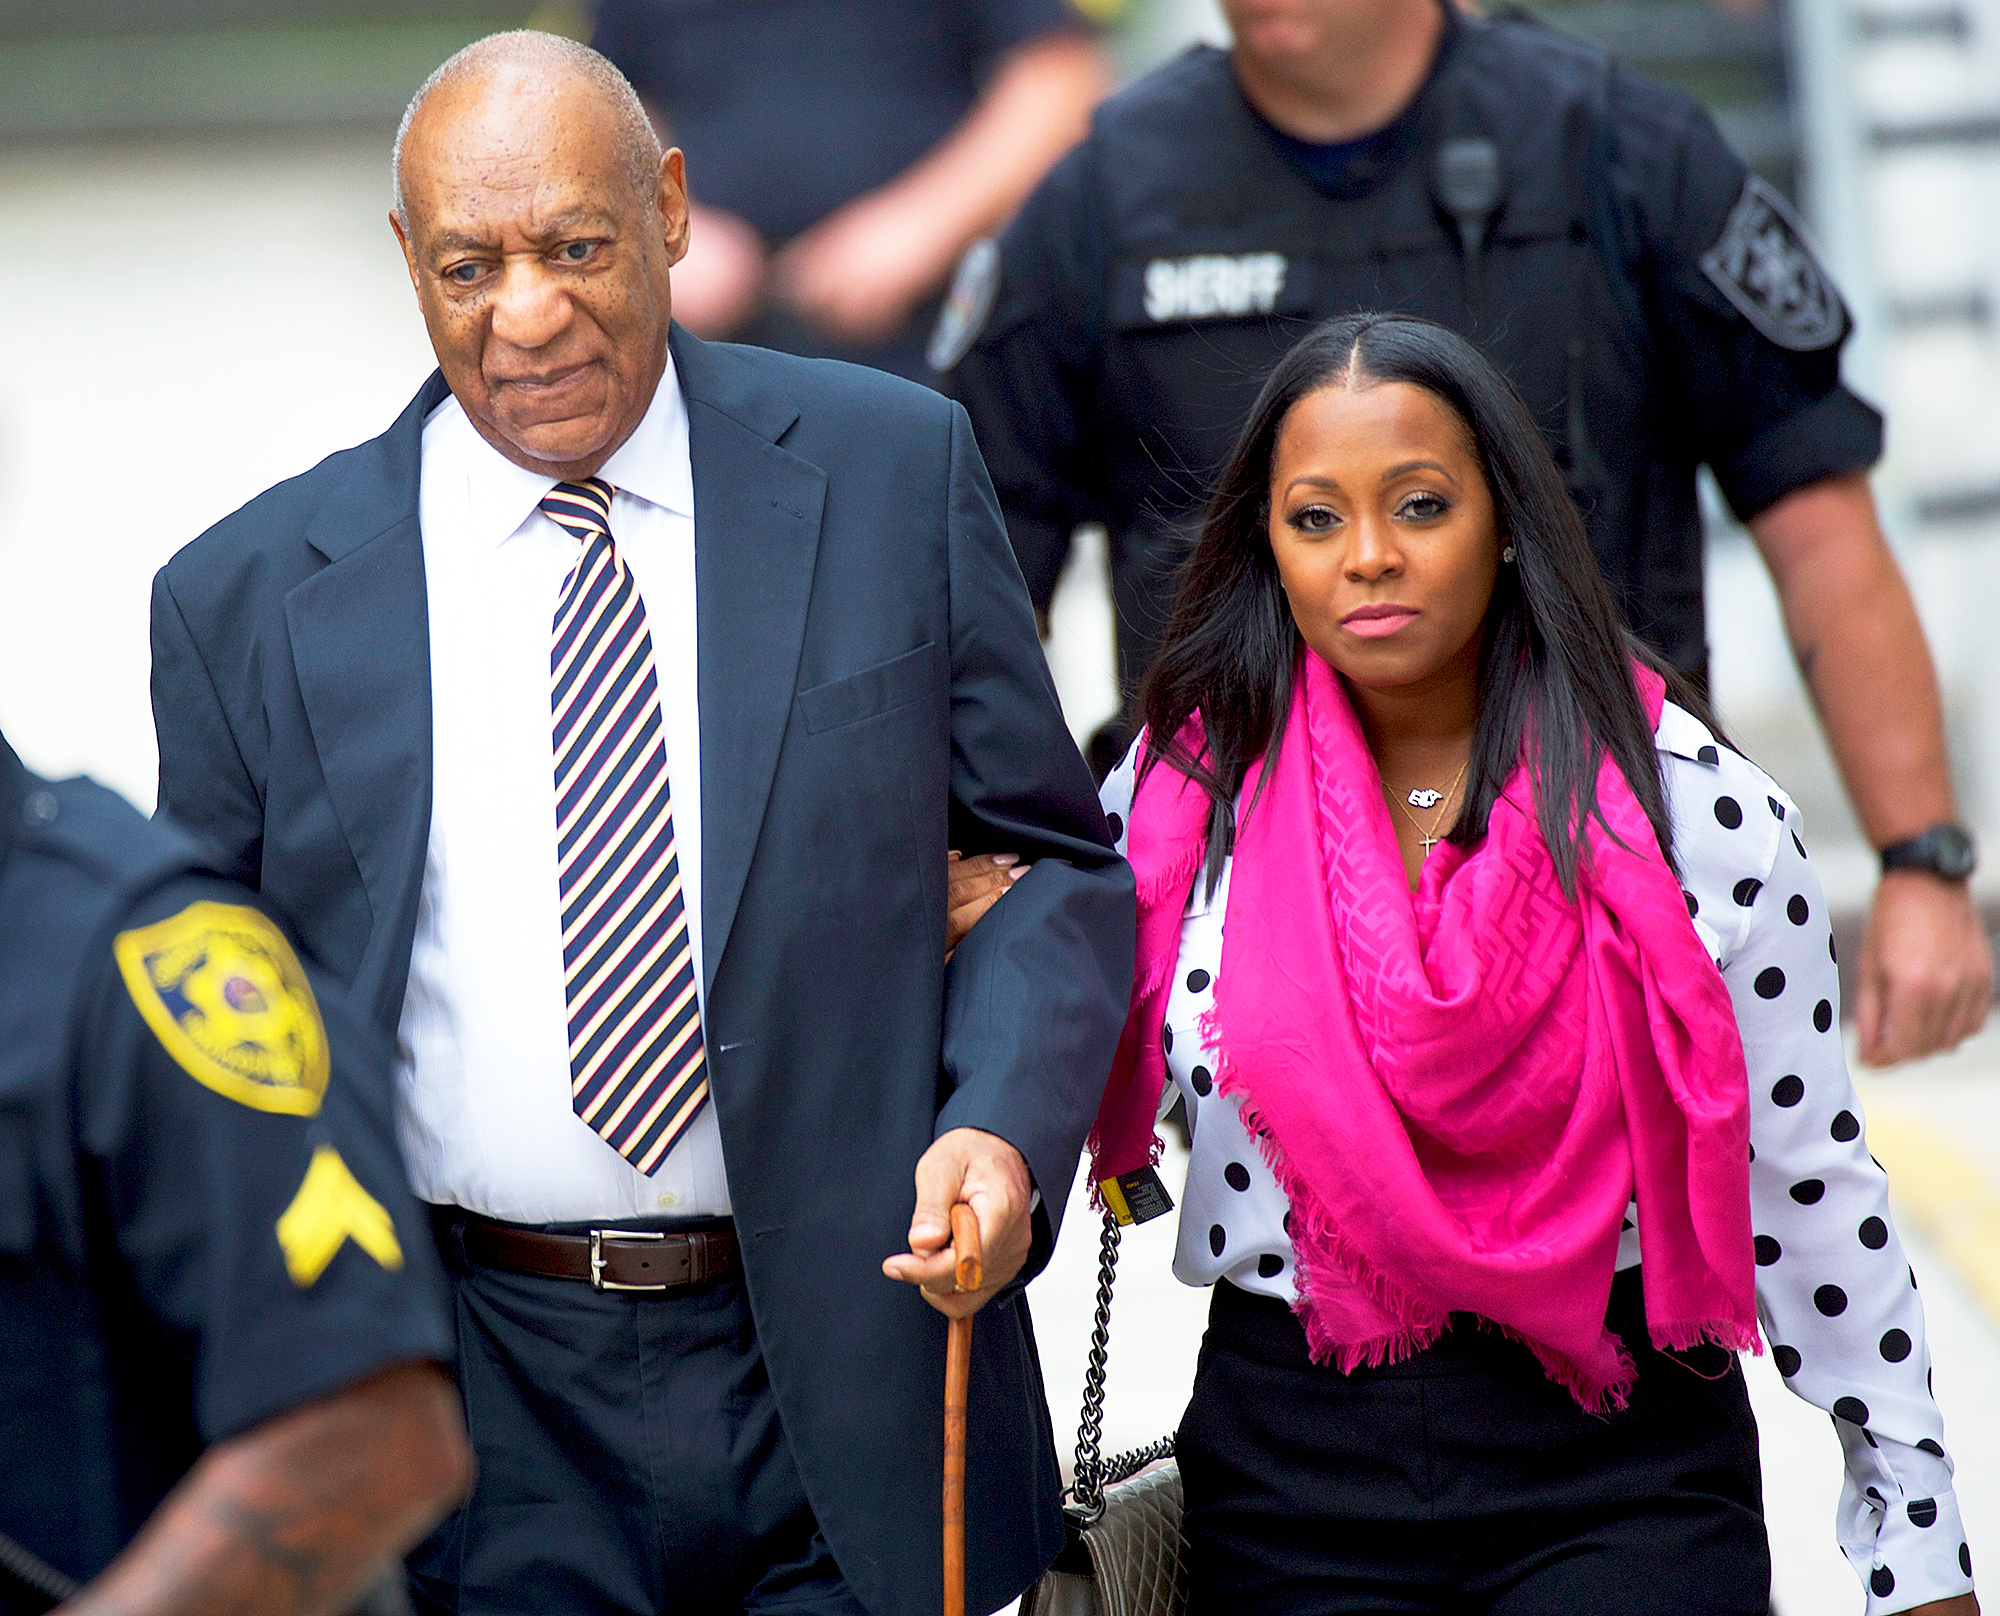 Bill Cosby and Keshia Knight Pulliam